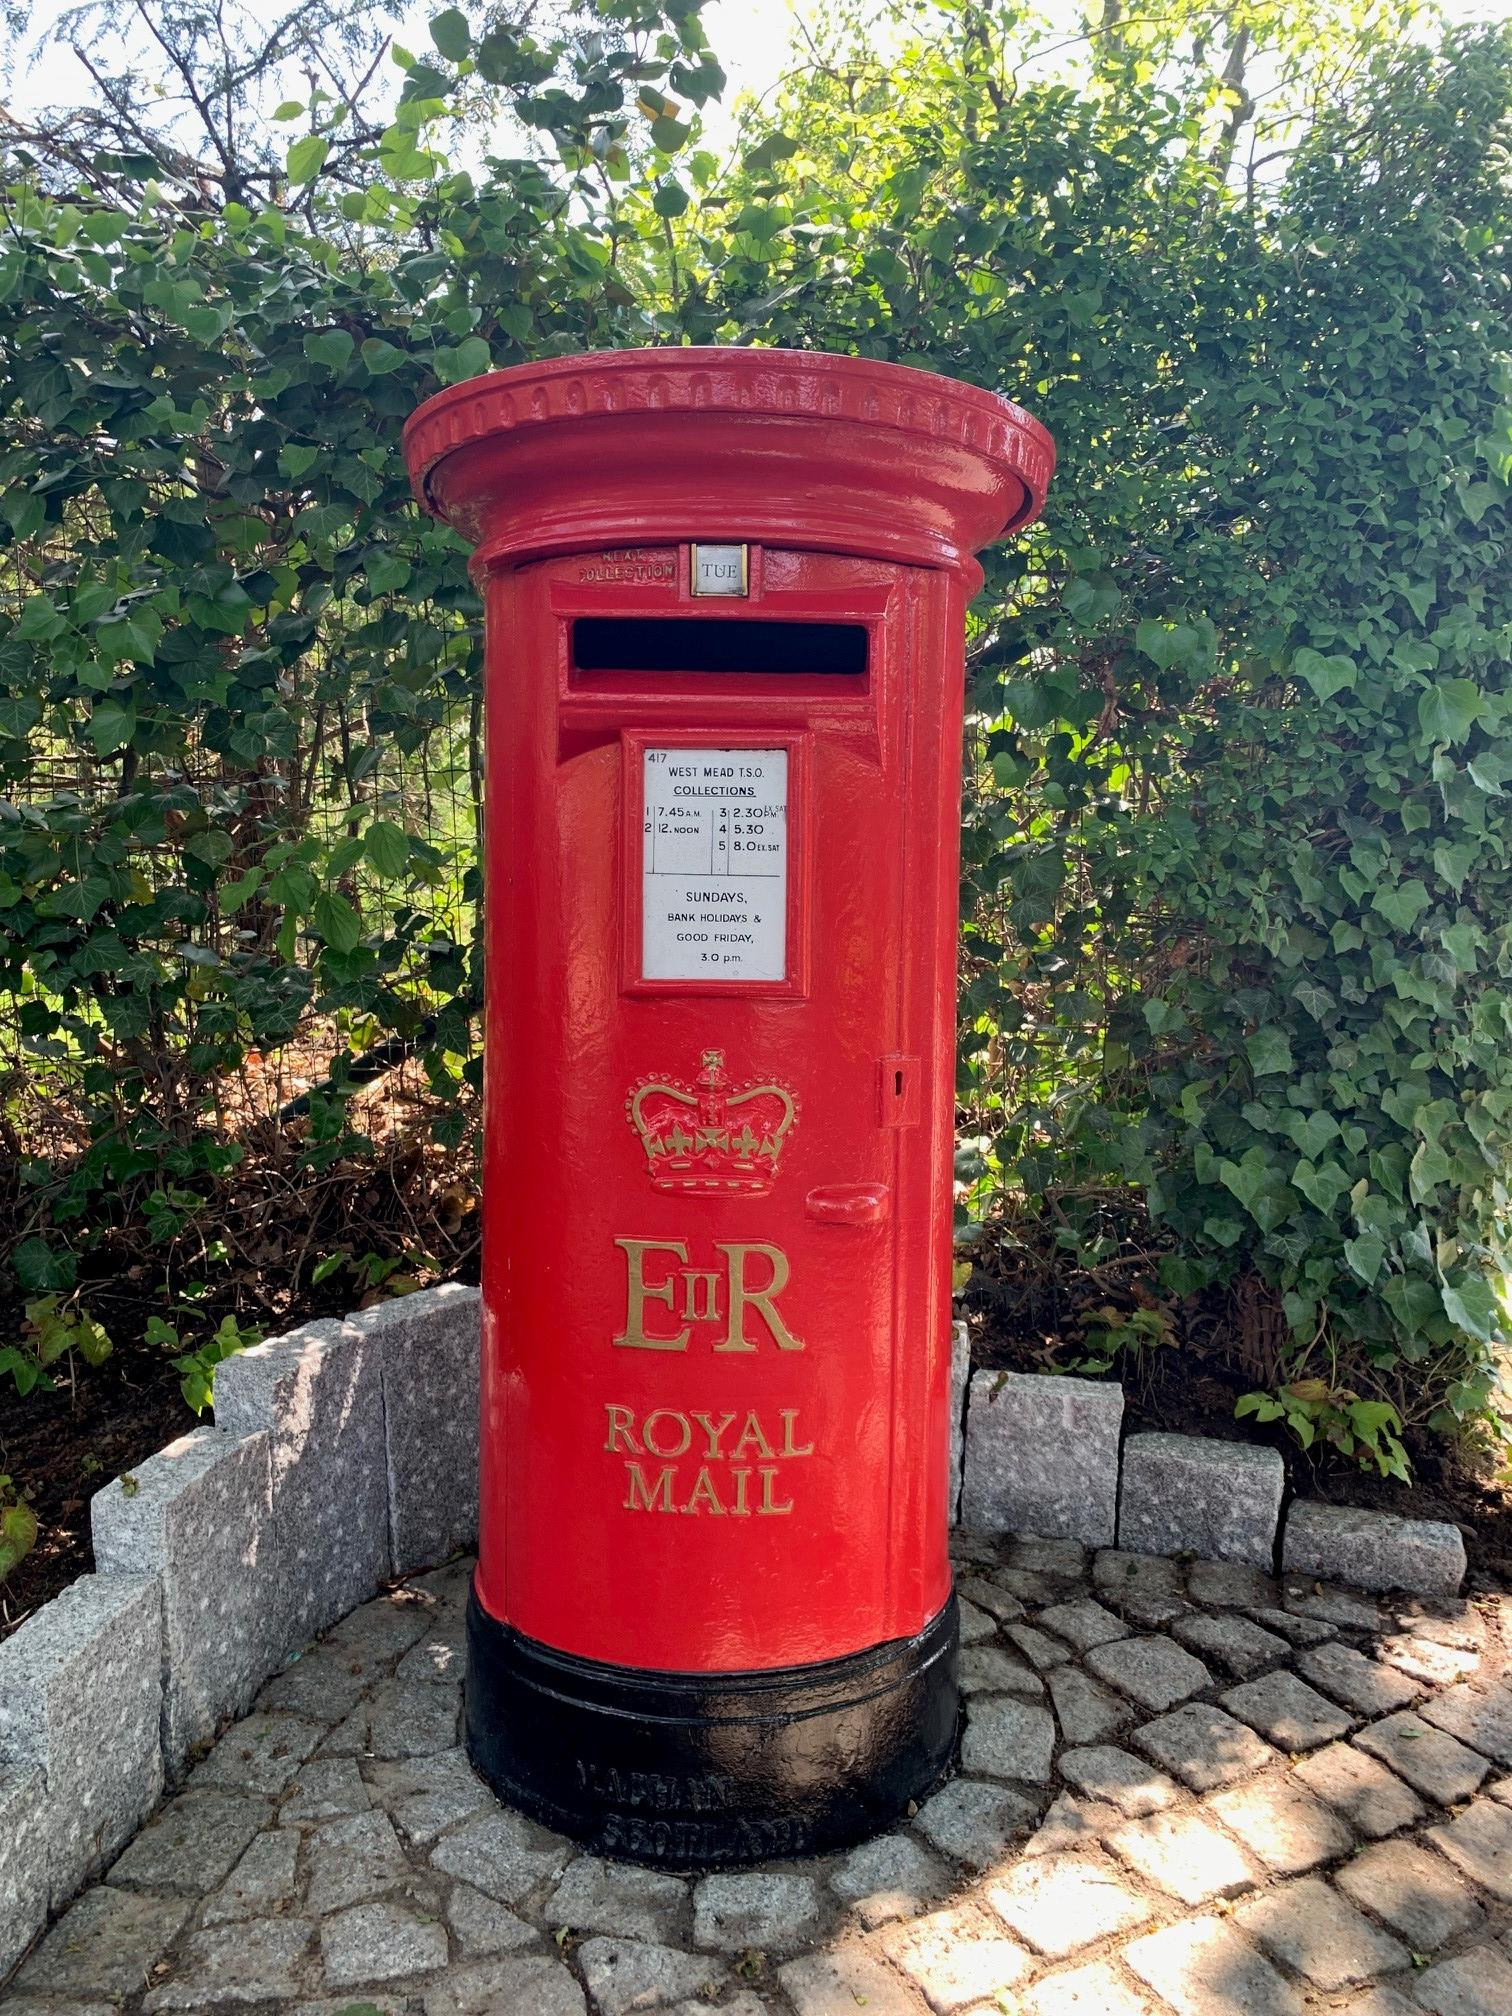 Buy Royal Mail pillar box and post boxes from UKAA. Showing the old red ERII Elizabeth pillar box fitted outside a customers home for their own mail/post